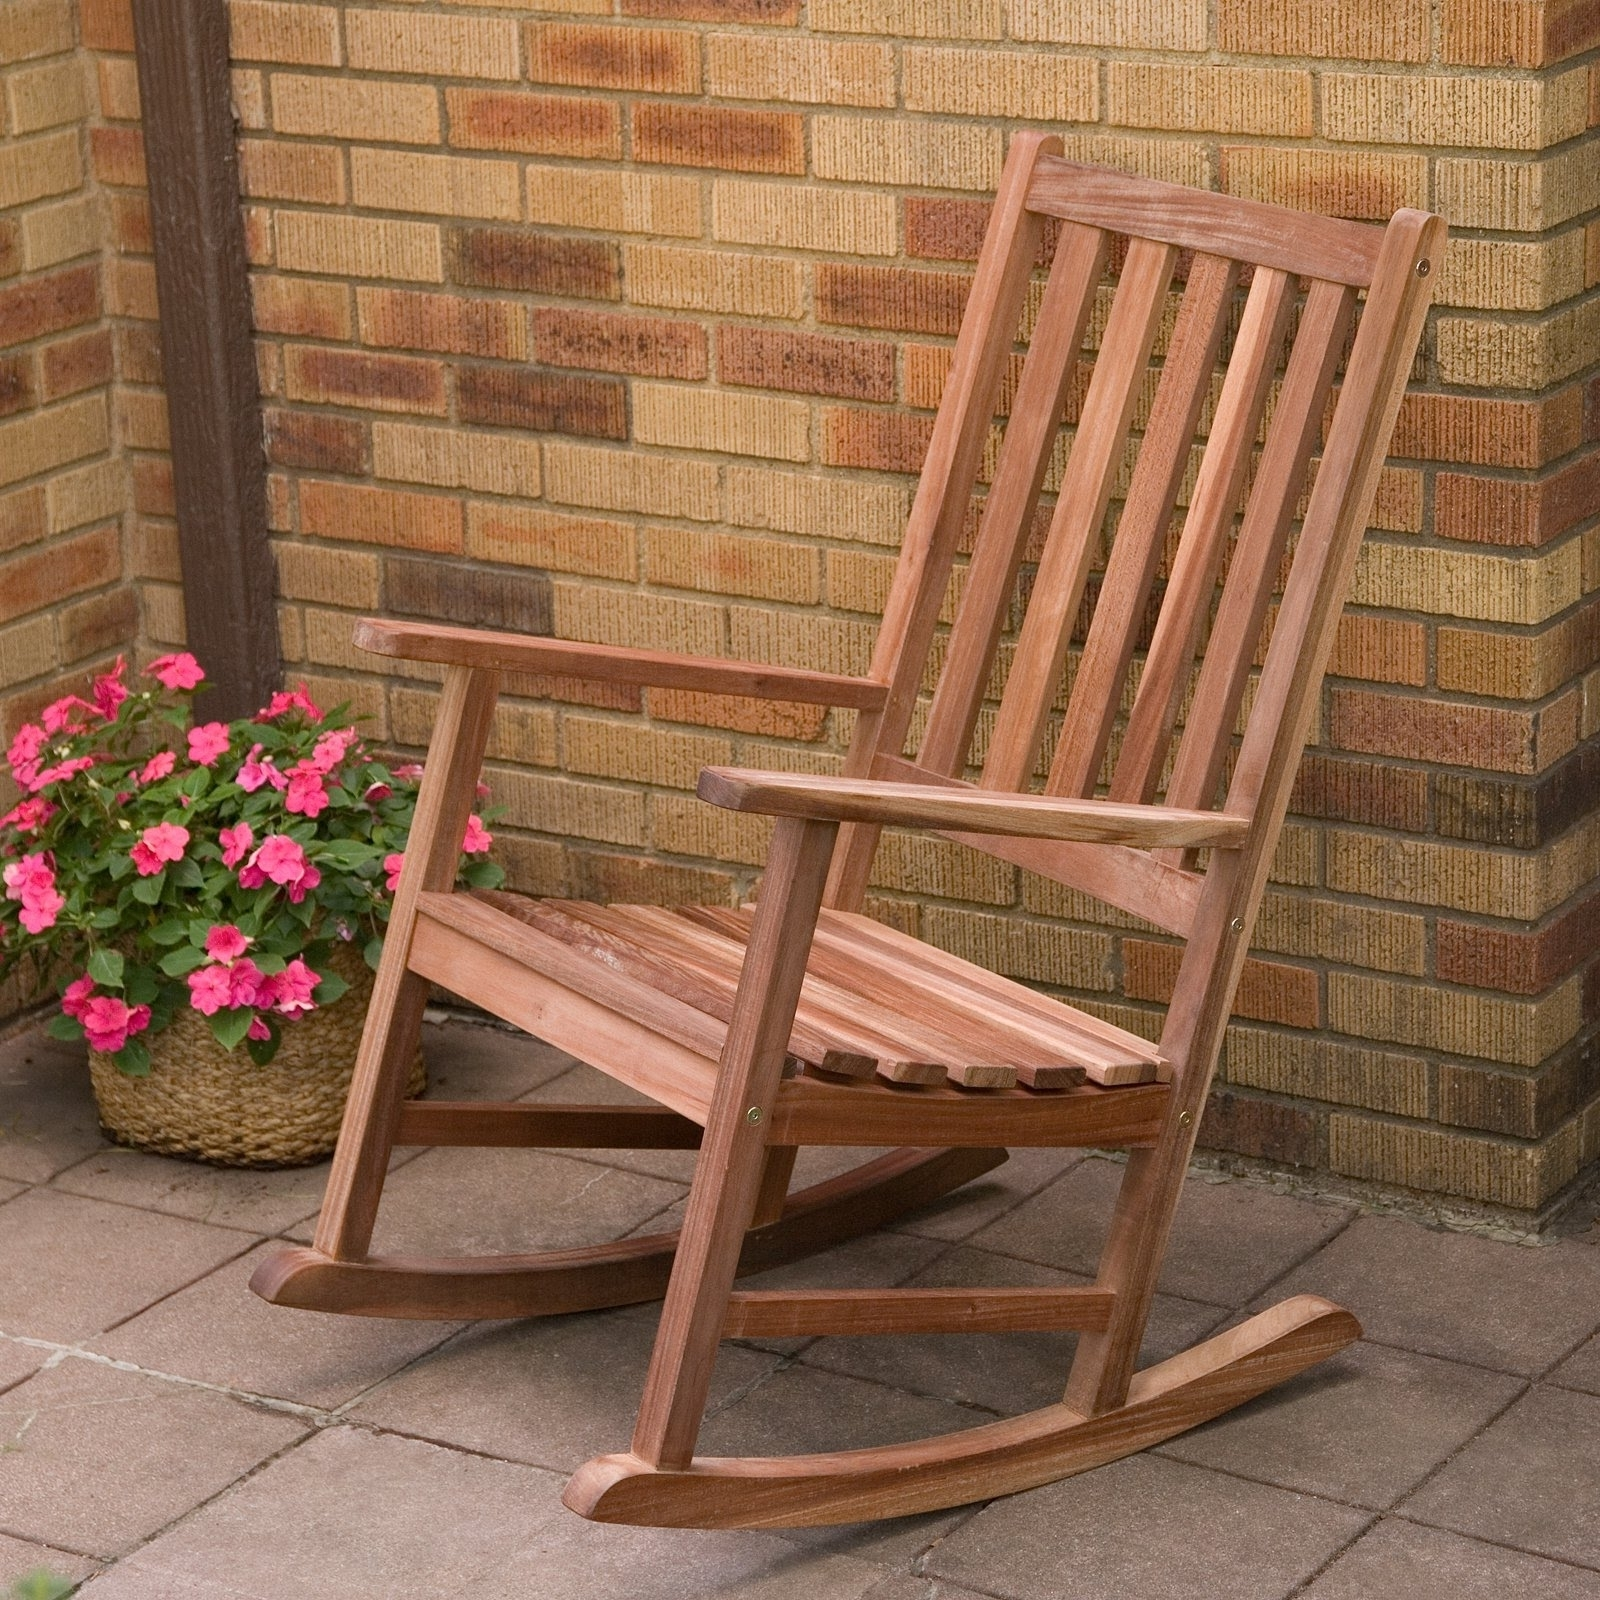 Patio & Garden : Outdoor Rocking Chair Lowes Outdoor Rocking Chair Within Most Recently Released Wicker Rocking Chairs And Ottoman (View 7 of 15)